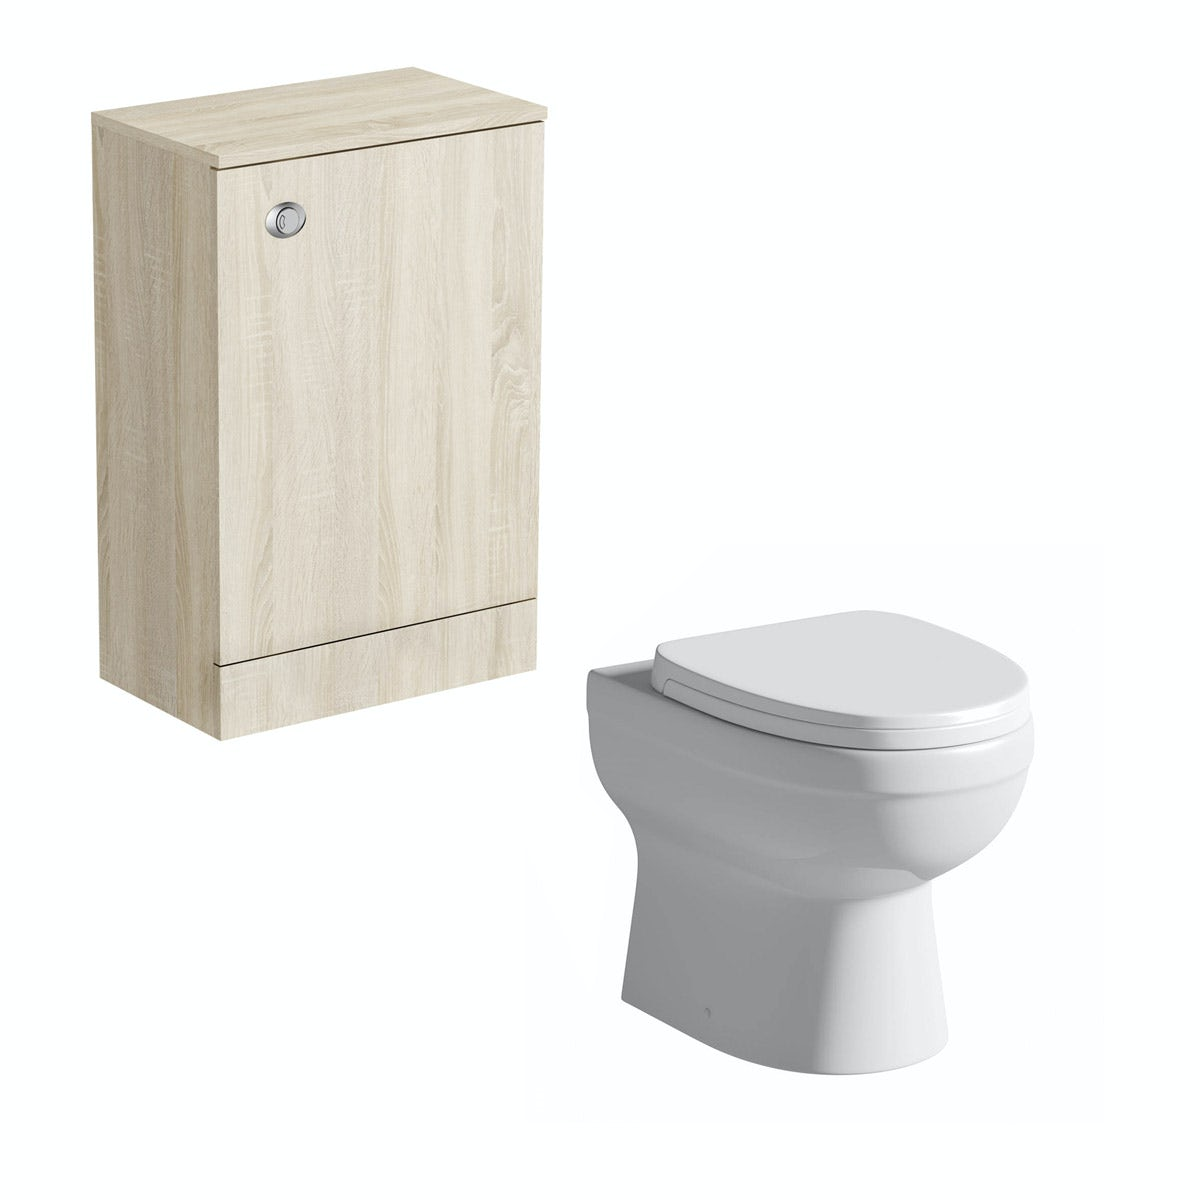 Arden oak back to wall unit with Eden toilet